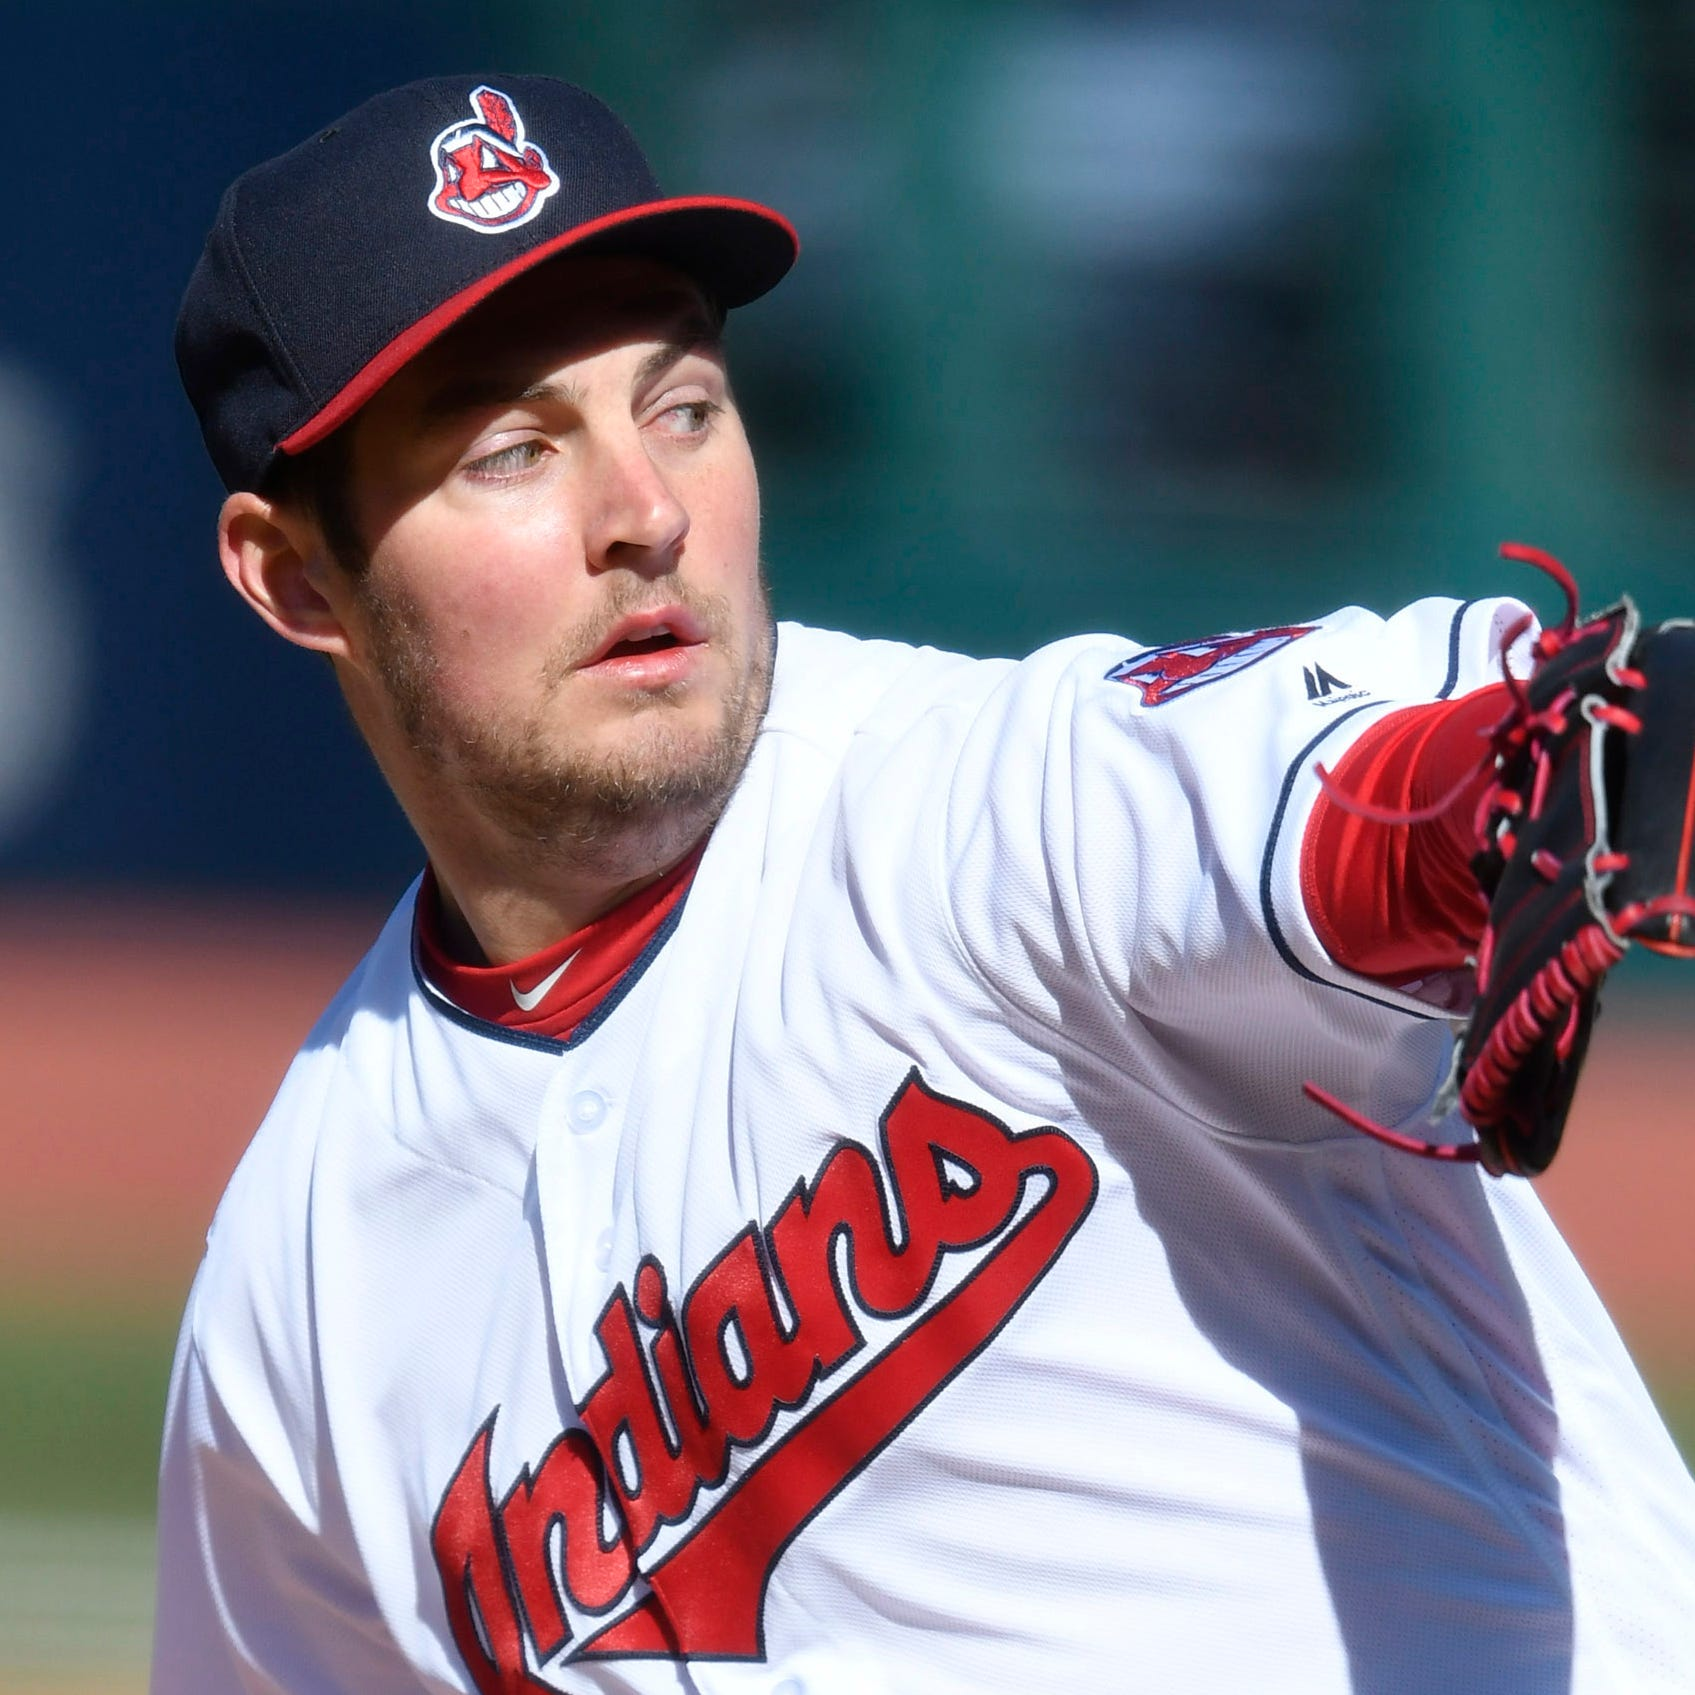 College student says she 'felt harassed' by Indians pitcher Trevor Bauer on Twitter